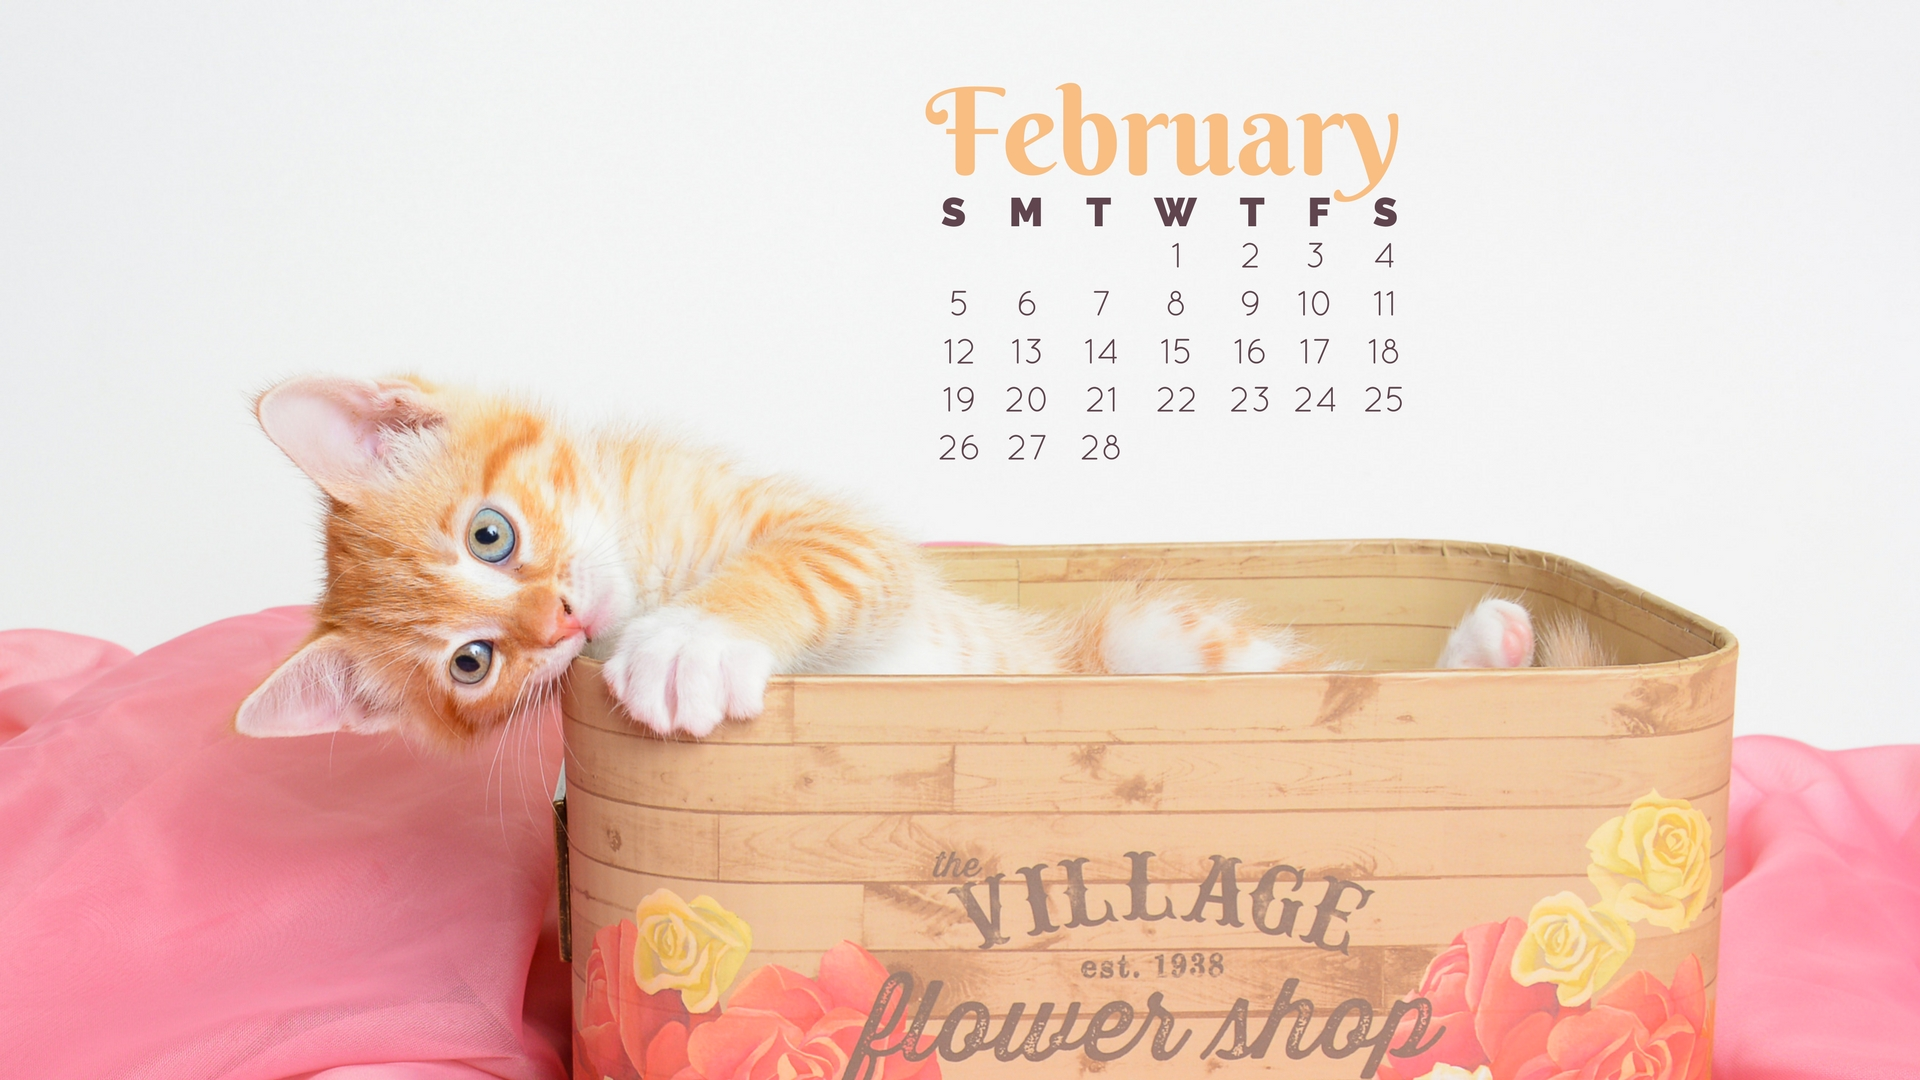 Butte Humane Society Feb 2017 Cat